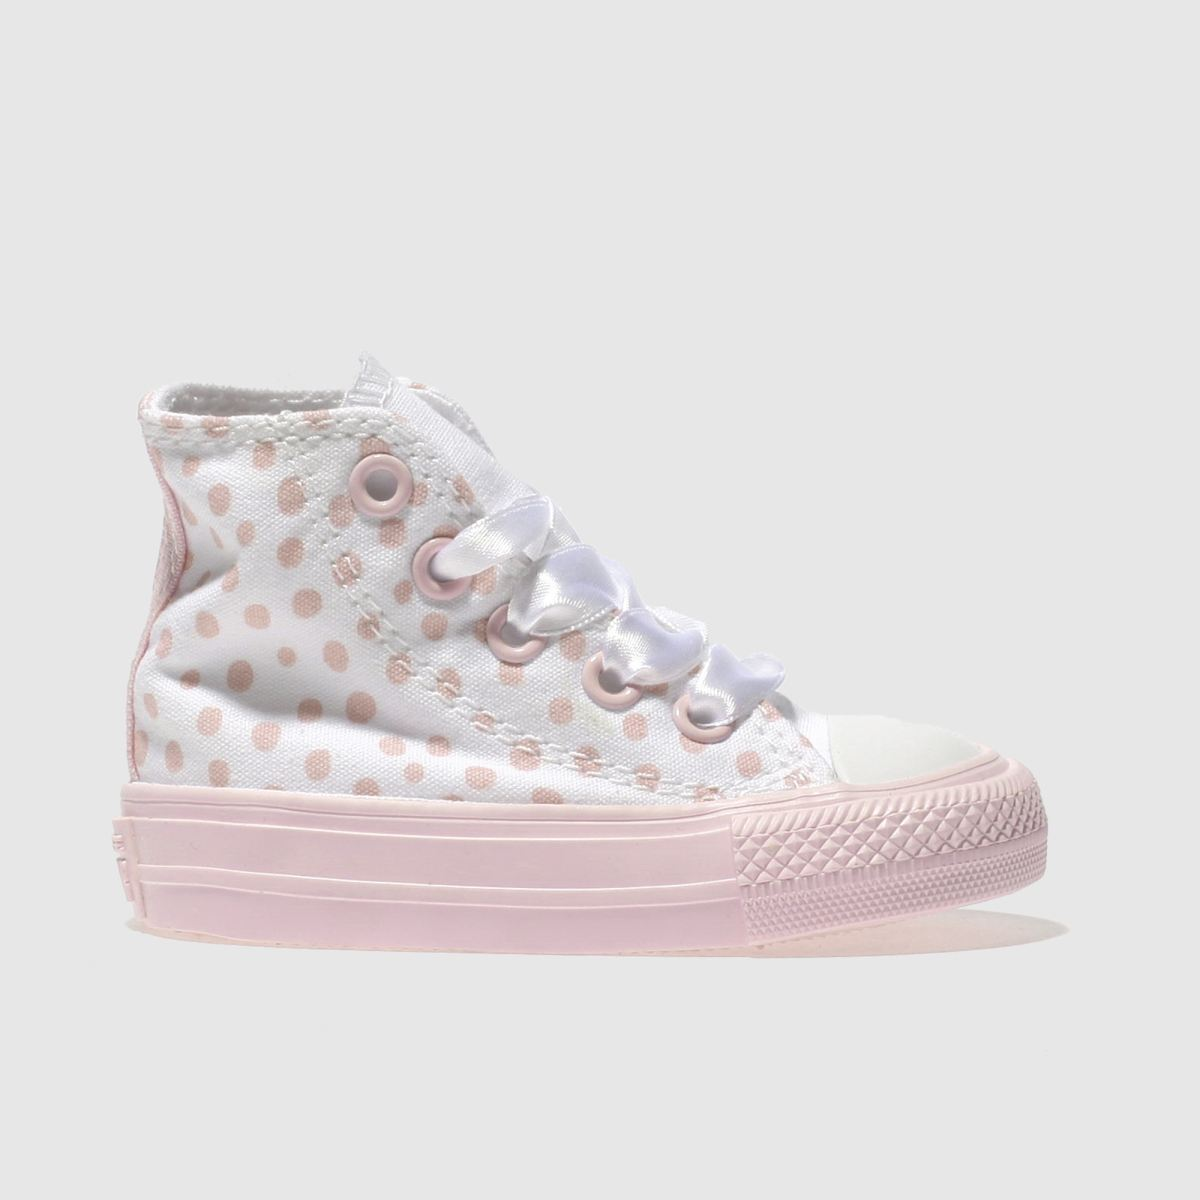 Converse White & Pink All Star Hi Polka Dot Girls Toddler Trainers